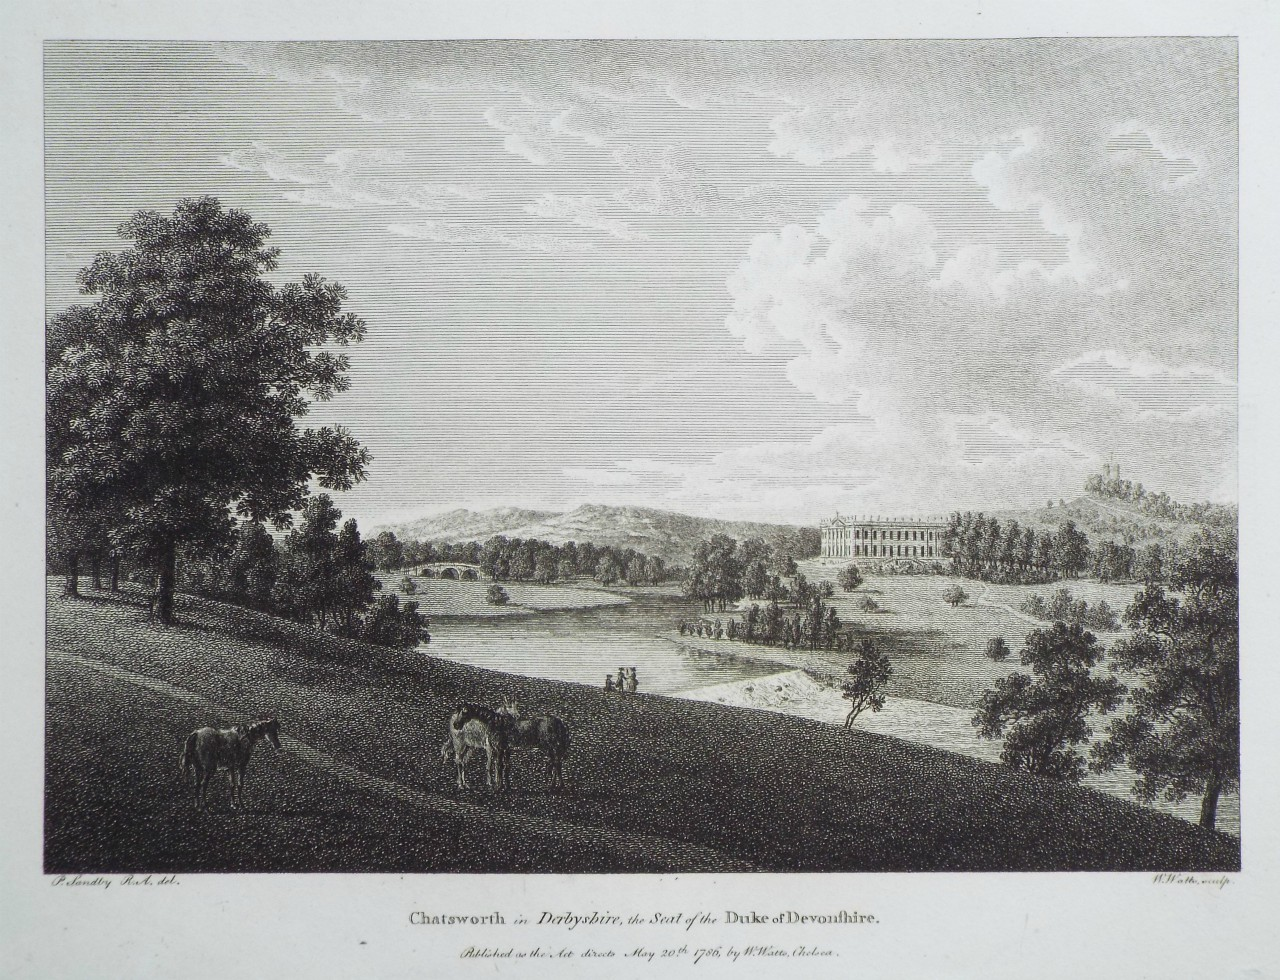 Print - Chatsworth in Derbyshire, the Seat of the Duke of Devonshire. - Watts